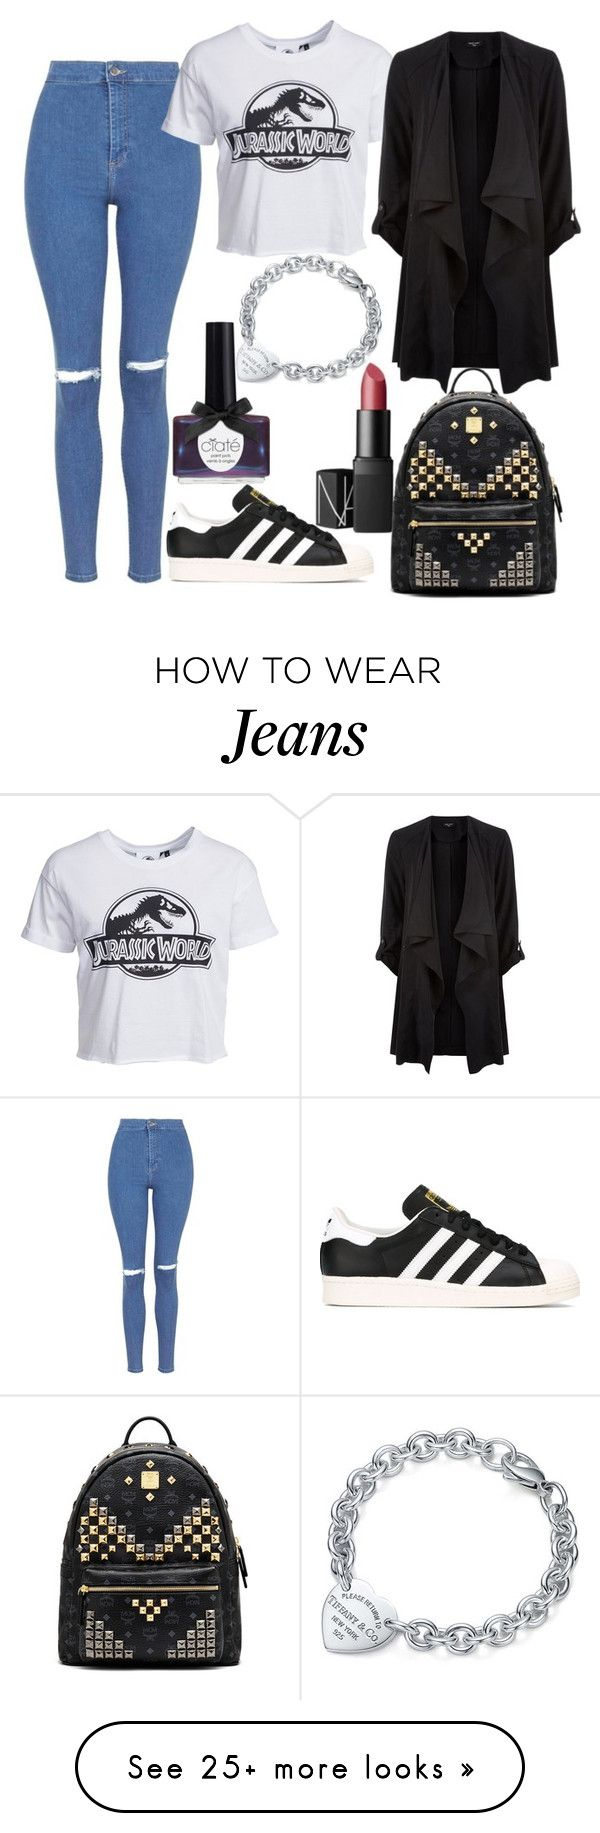 """Untitled#12579"" by mihai-theodora on Polyvore featuring Topshop, New Look, NARS Cosmetics, adidas, Ciaté and Tiffany & Co."